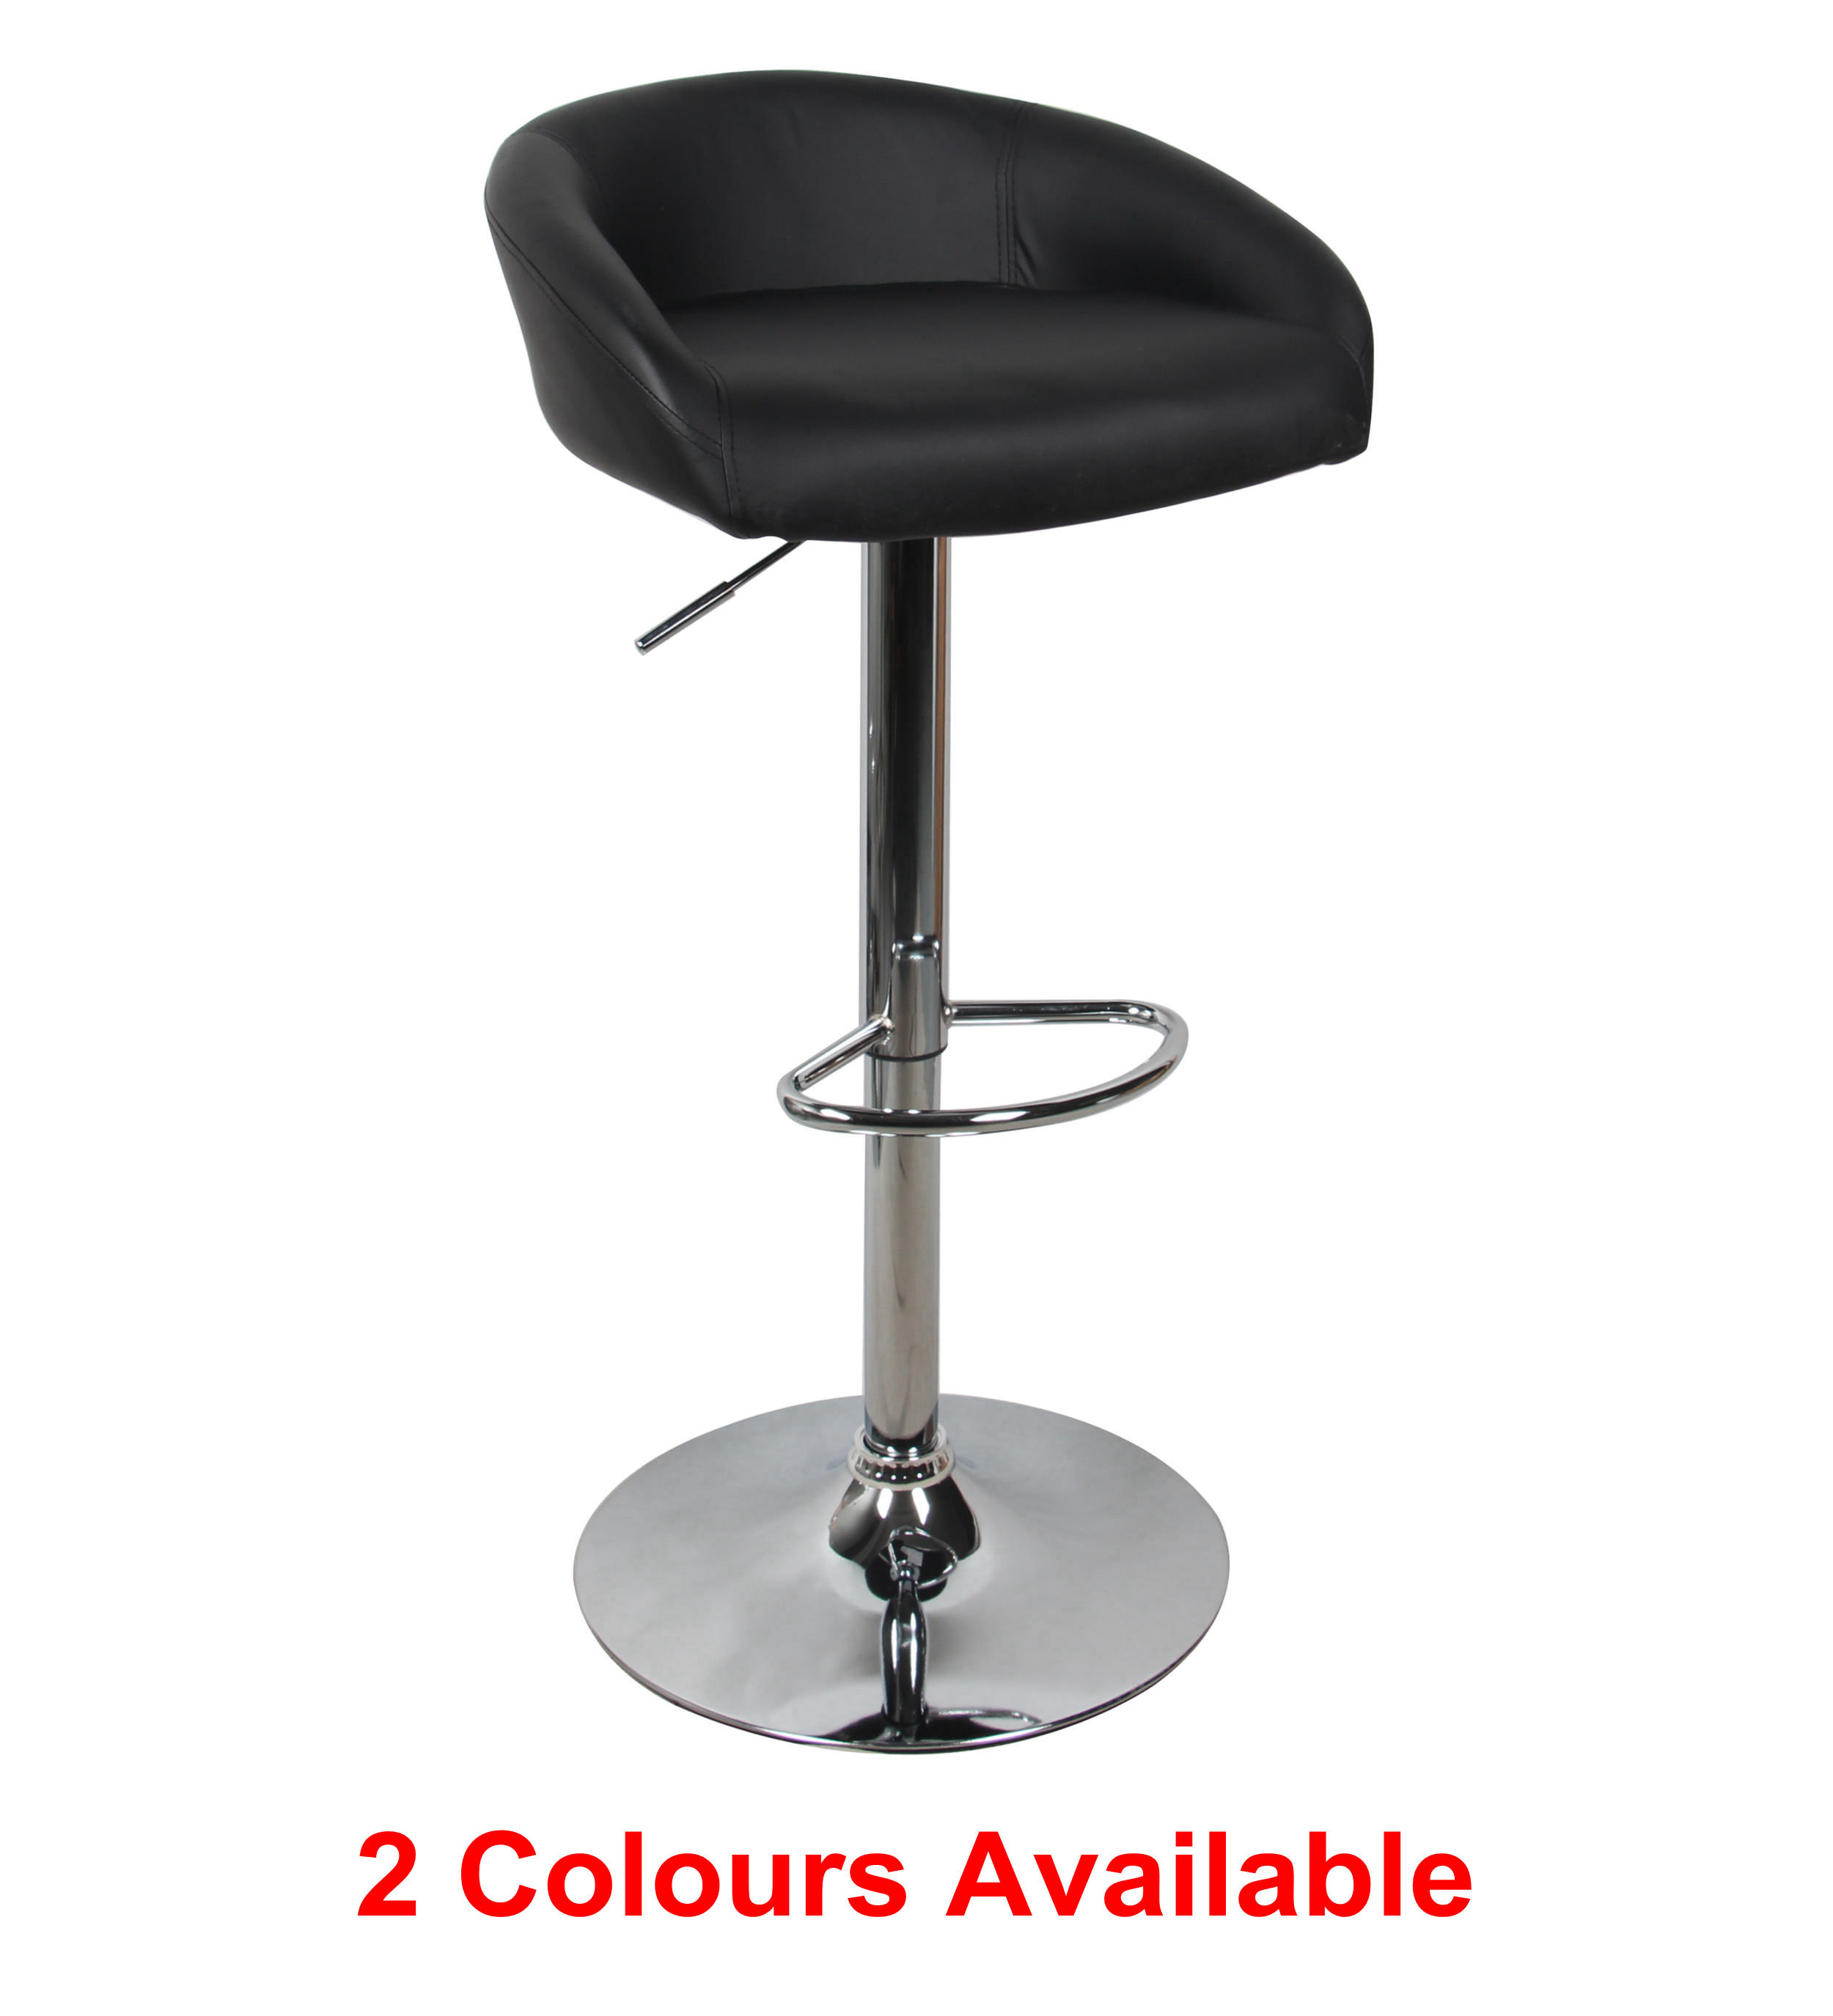 Adjustable Height Swivel Bar Stool Contemporary Style Moustache